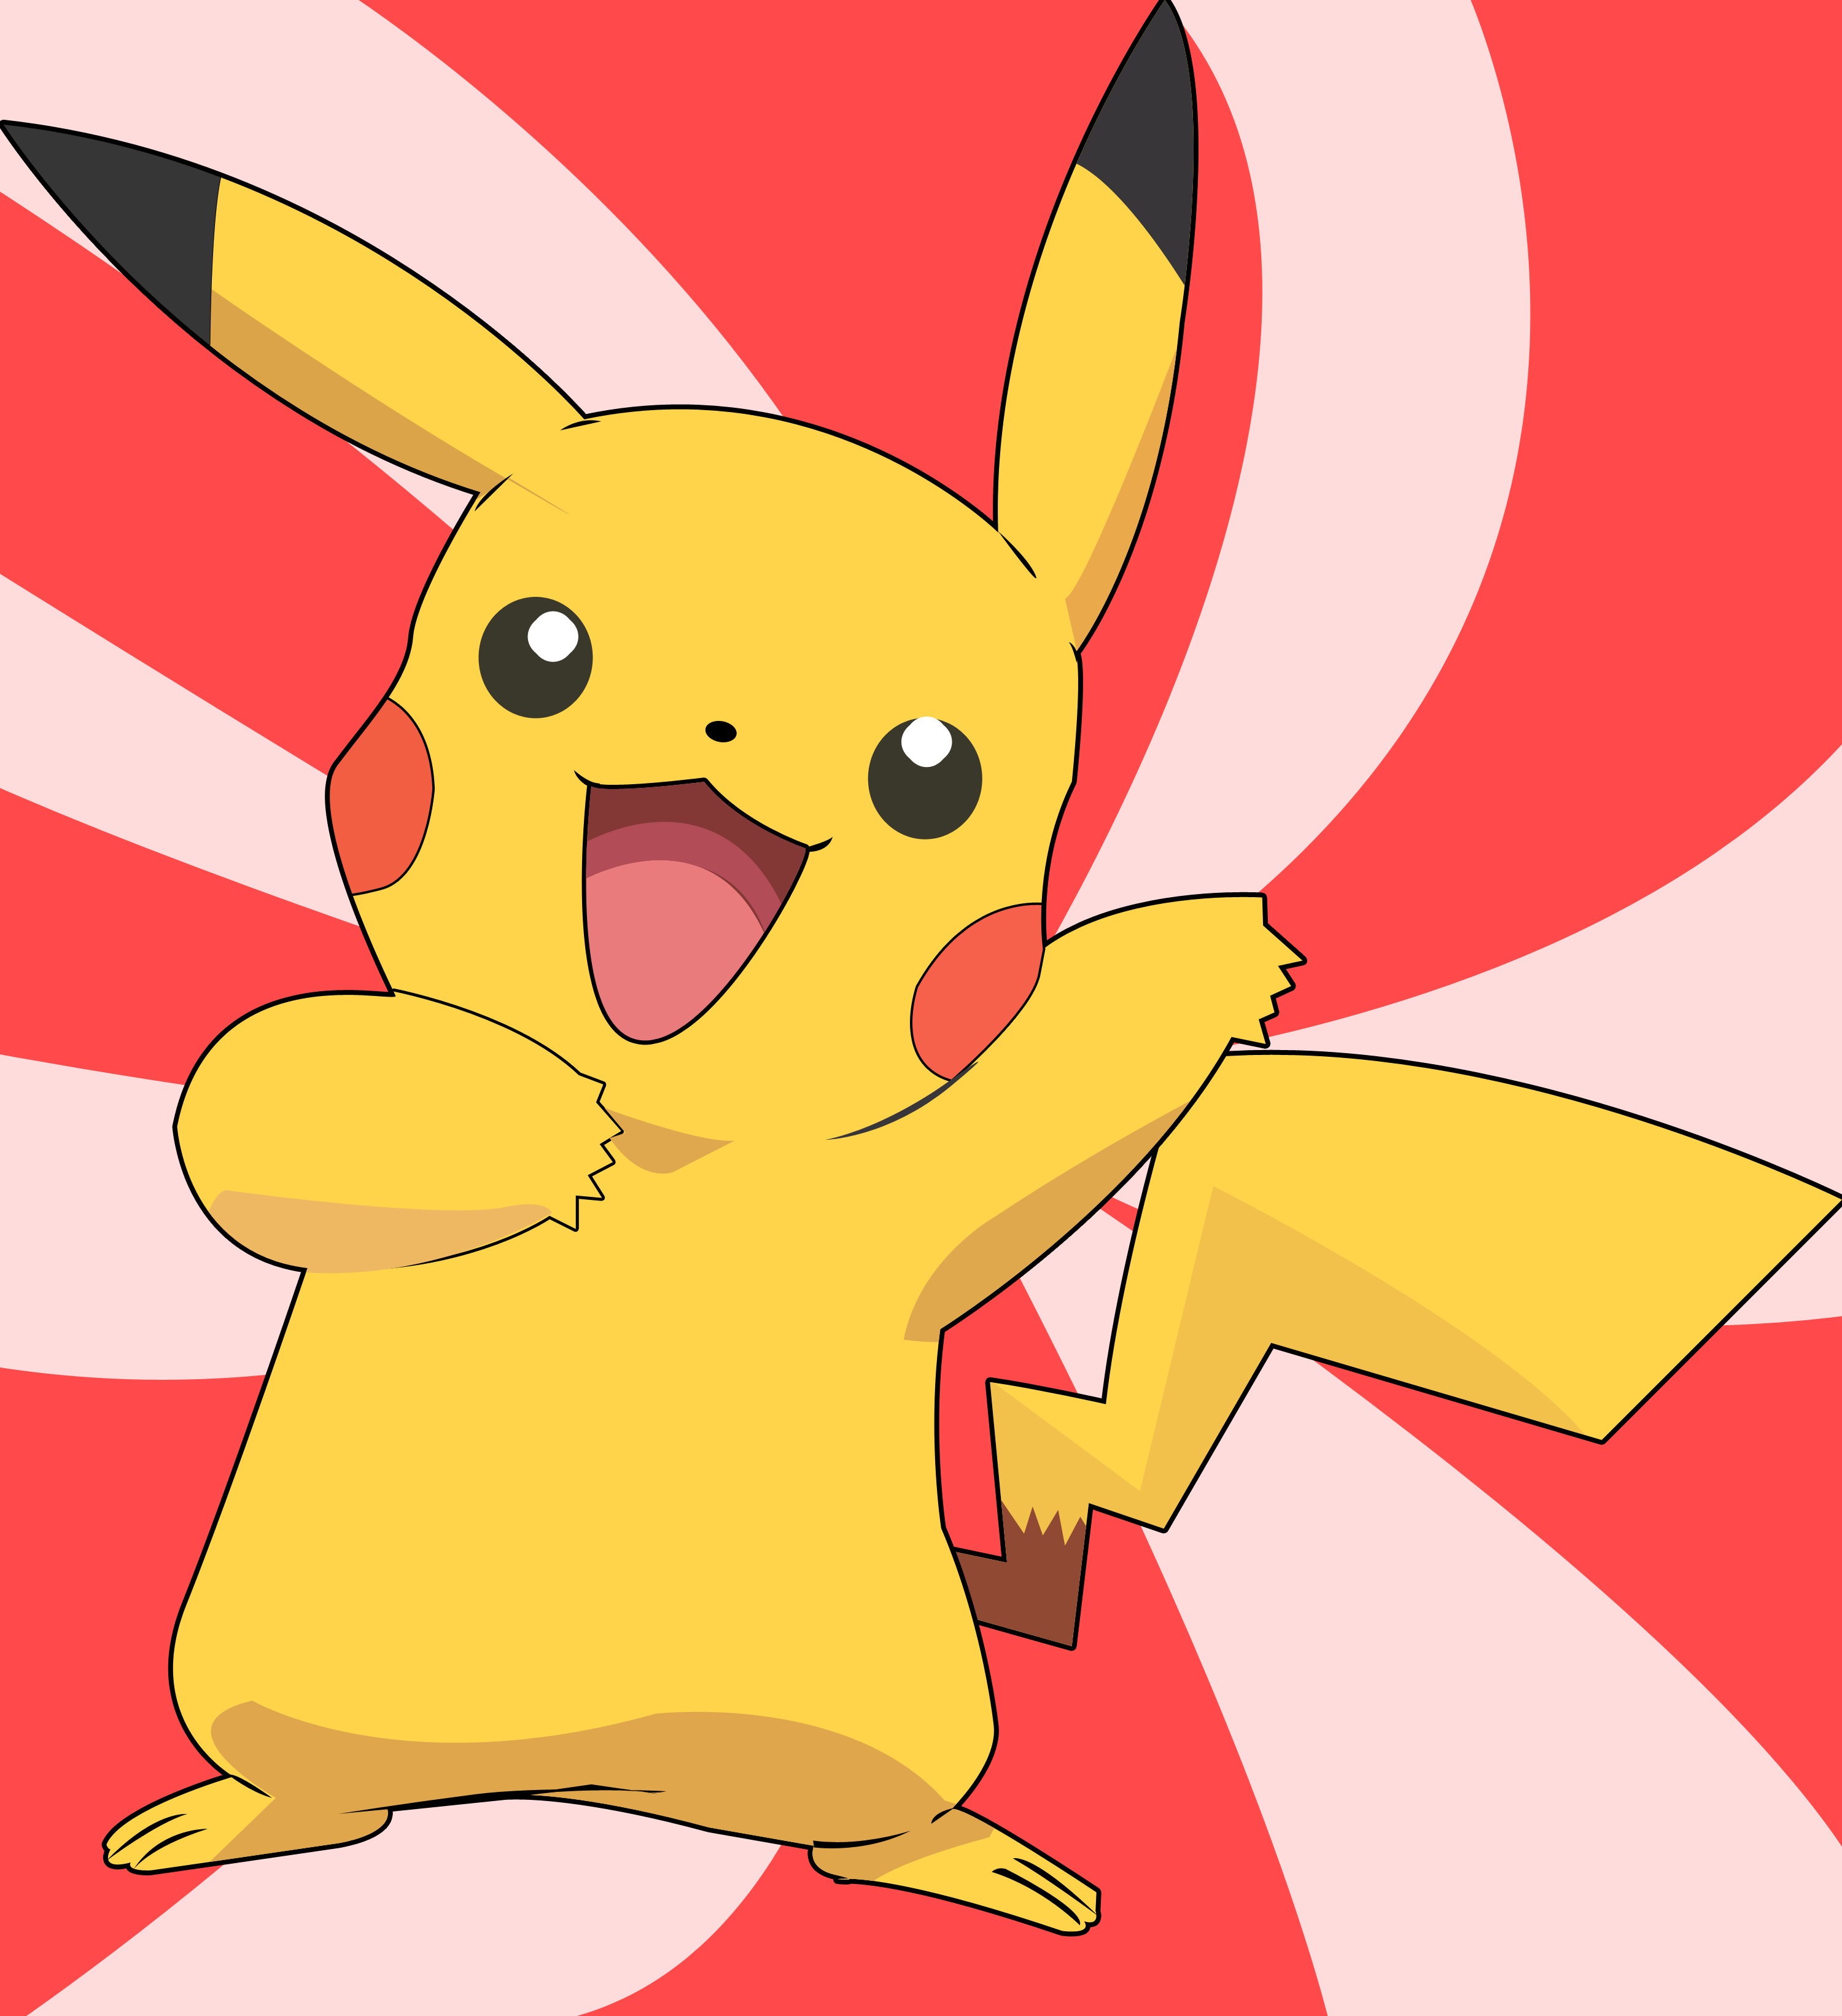 a report on my favorite cartoon character from pokemon pikachu